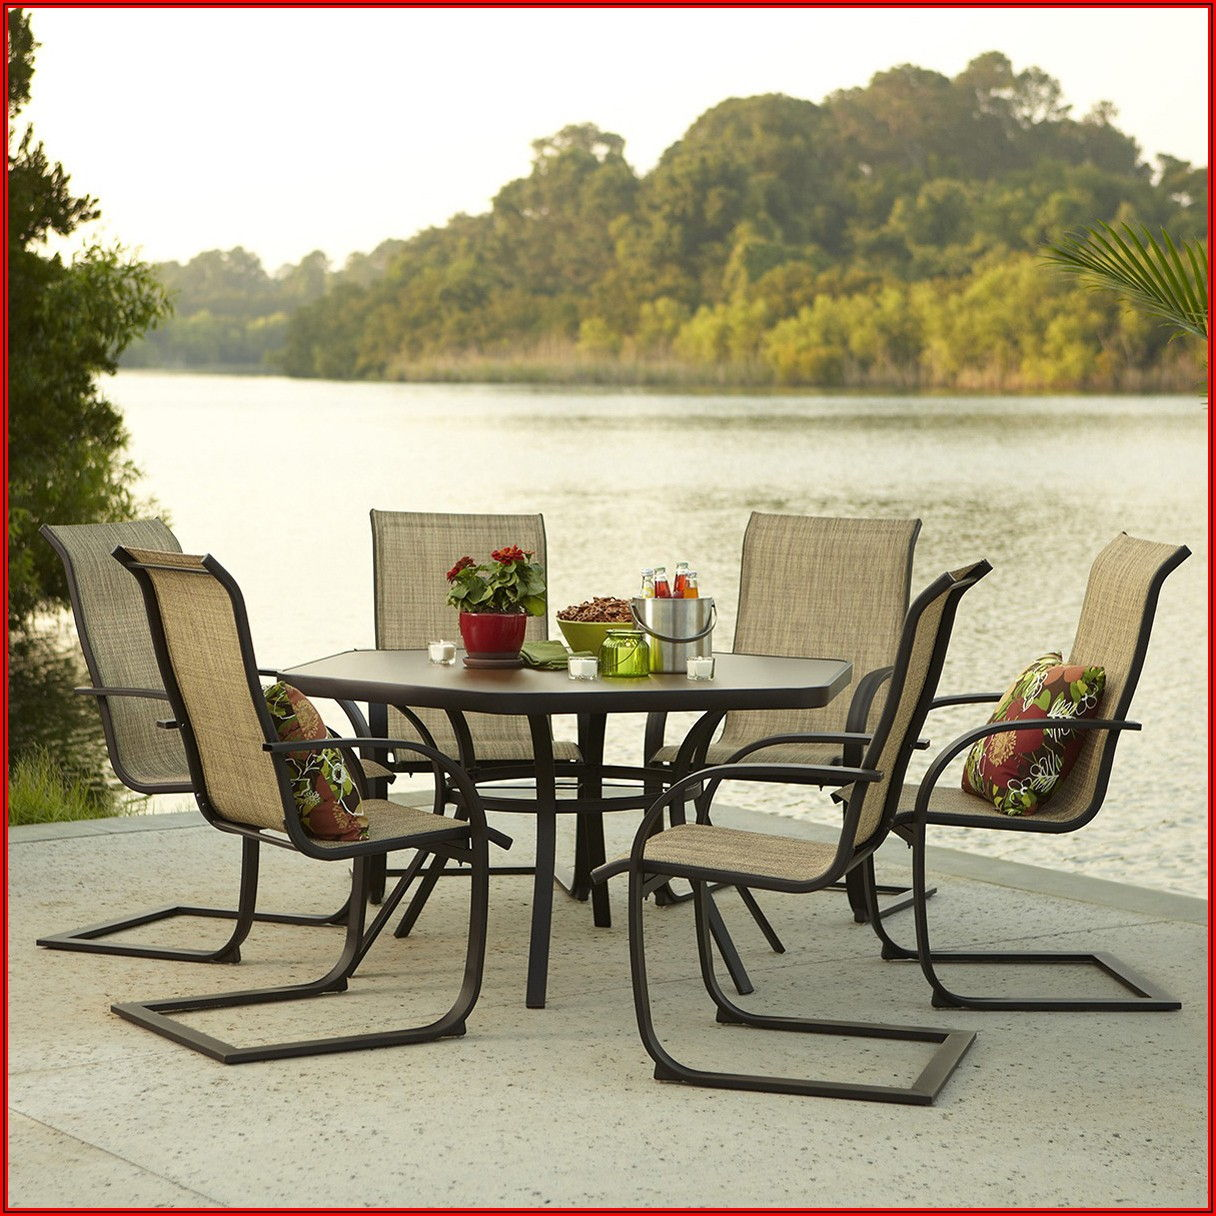 Art Van Outdoor Patio Furniture